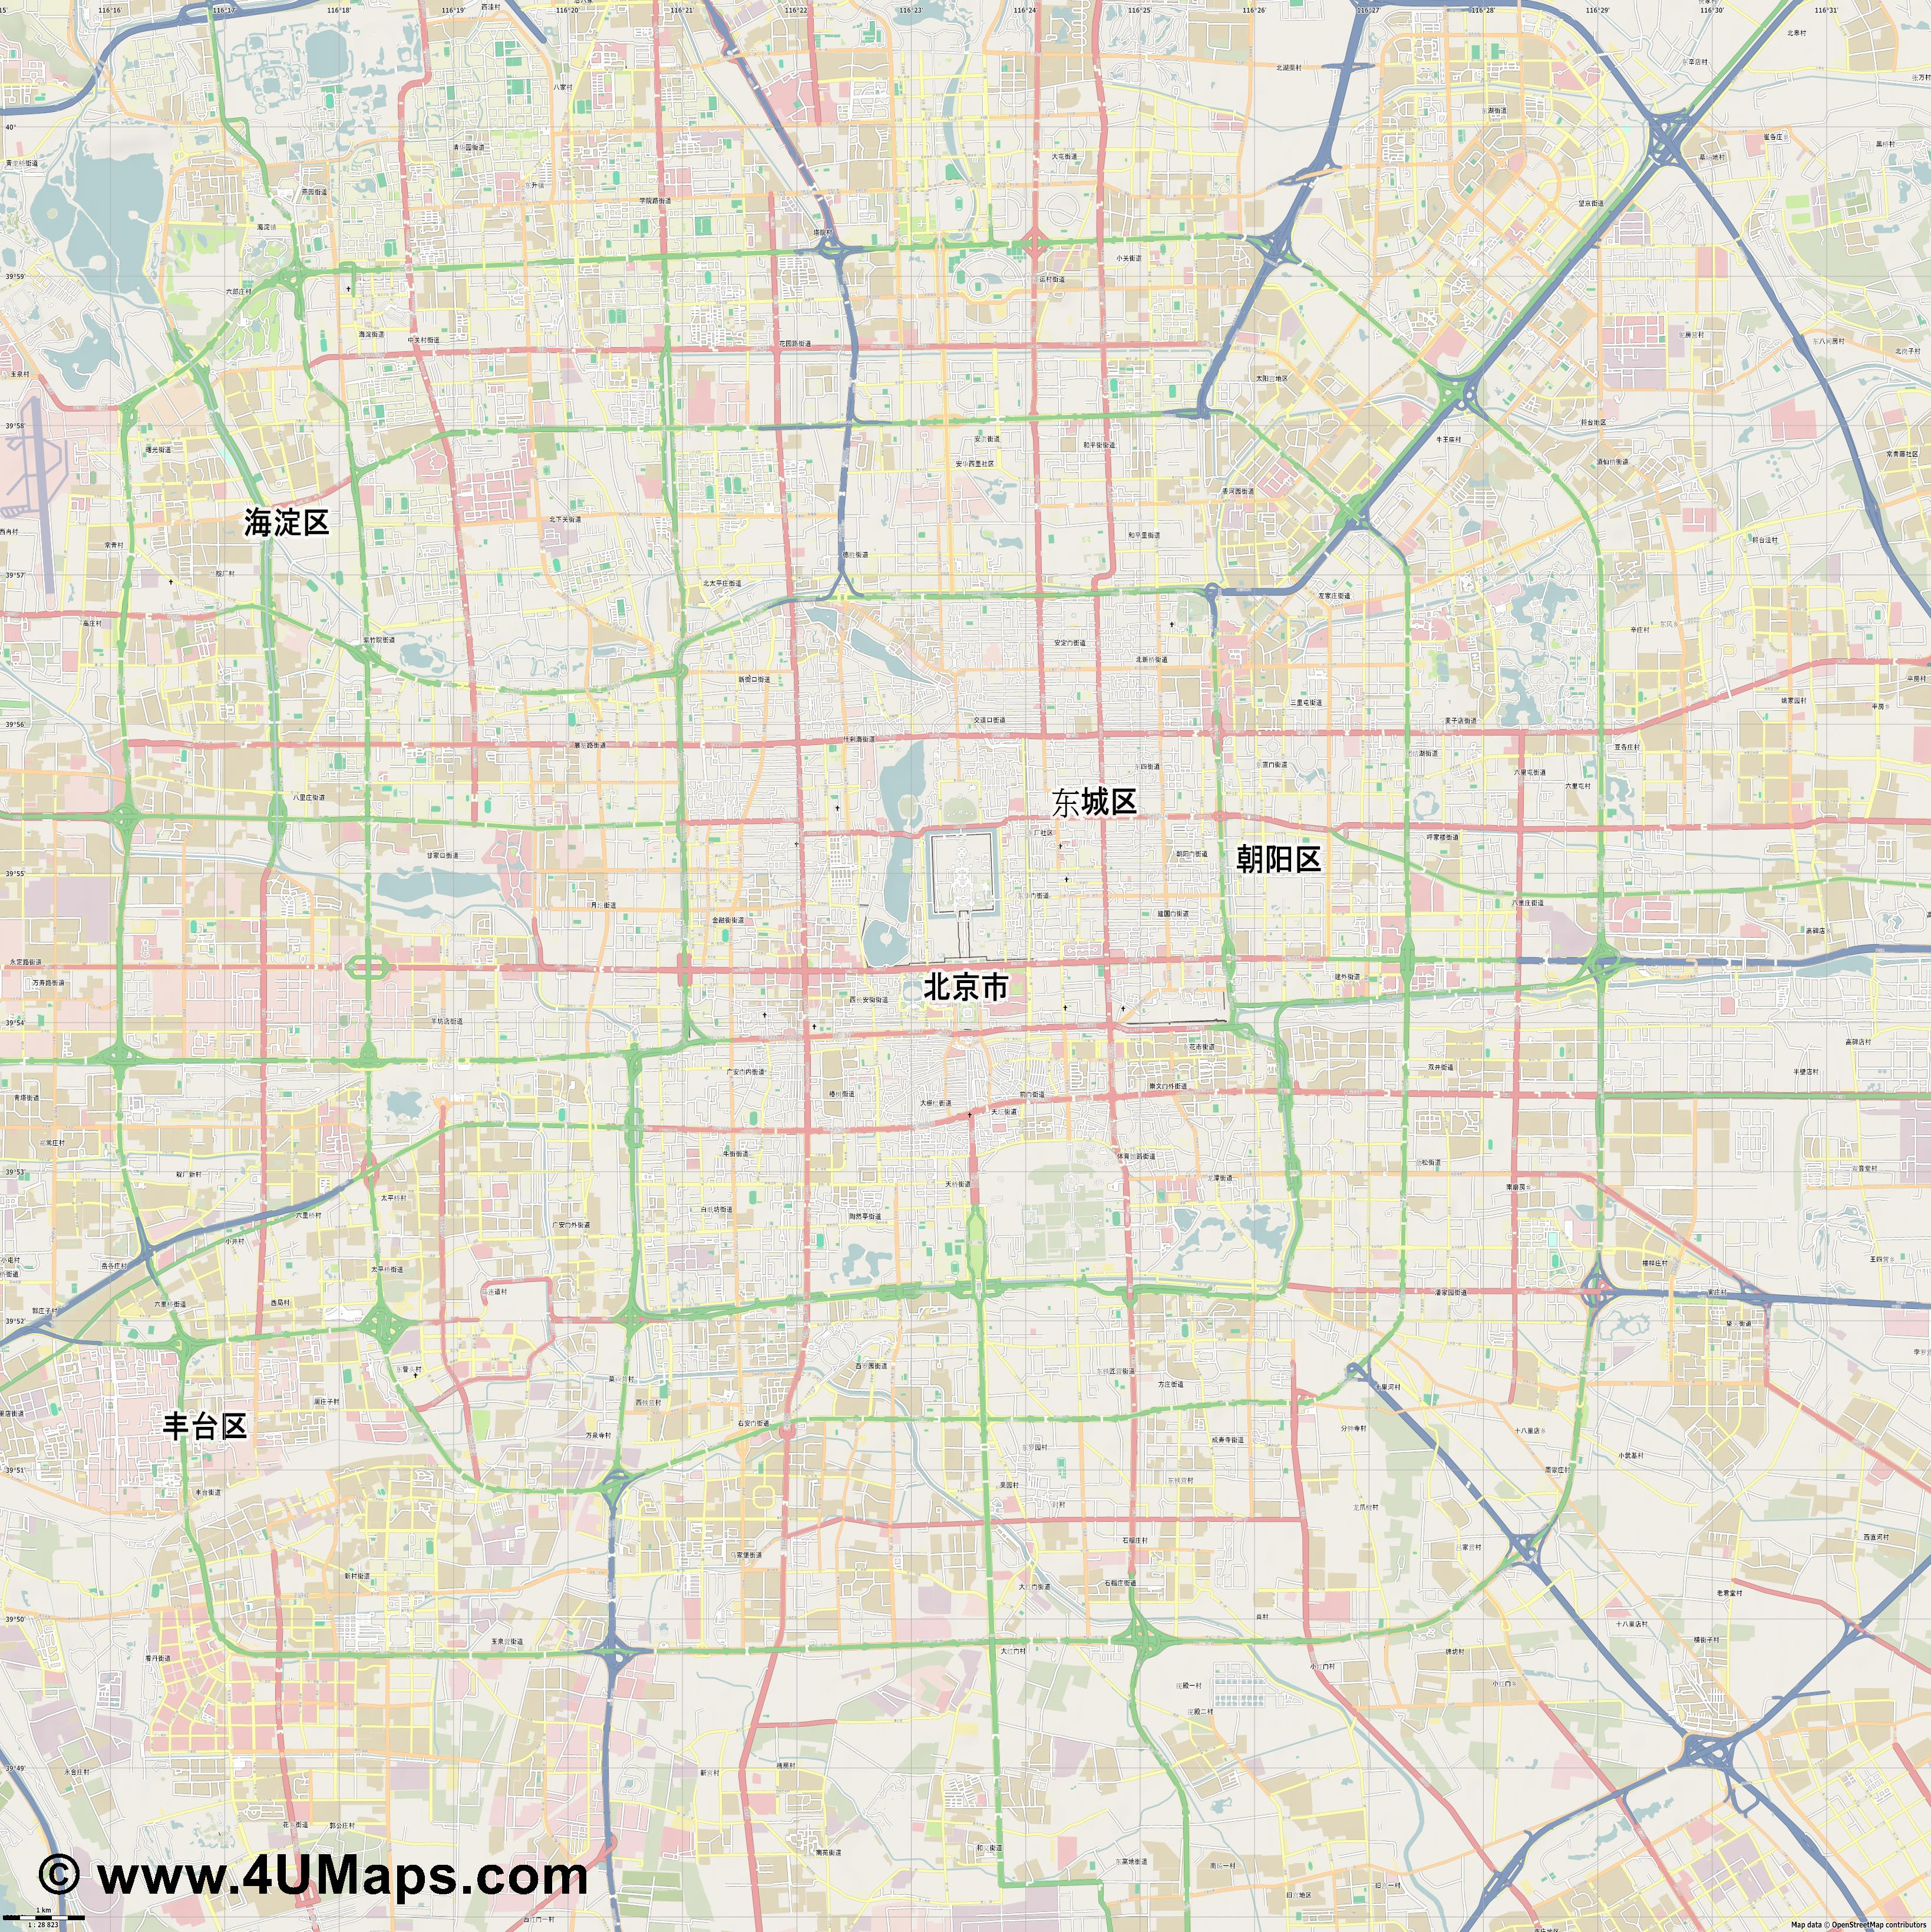 北京市 Beijing Pekín Pékin Pechino Peking  jpg high detail, large area preview vector city map